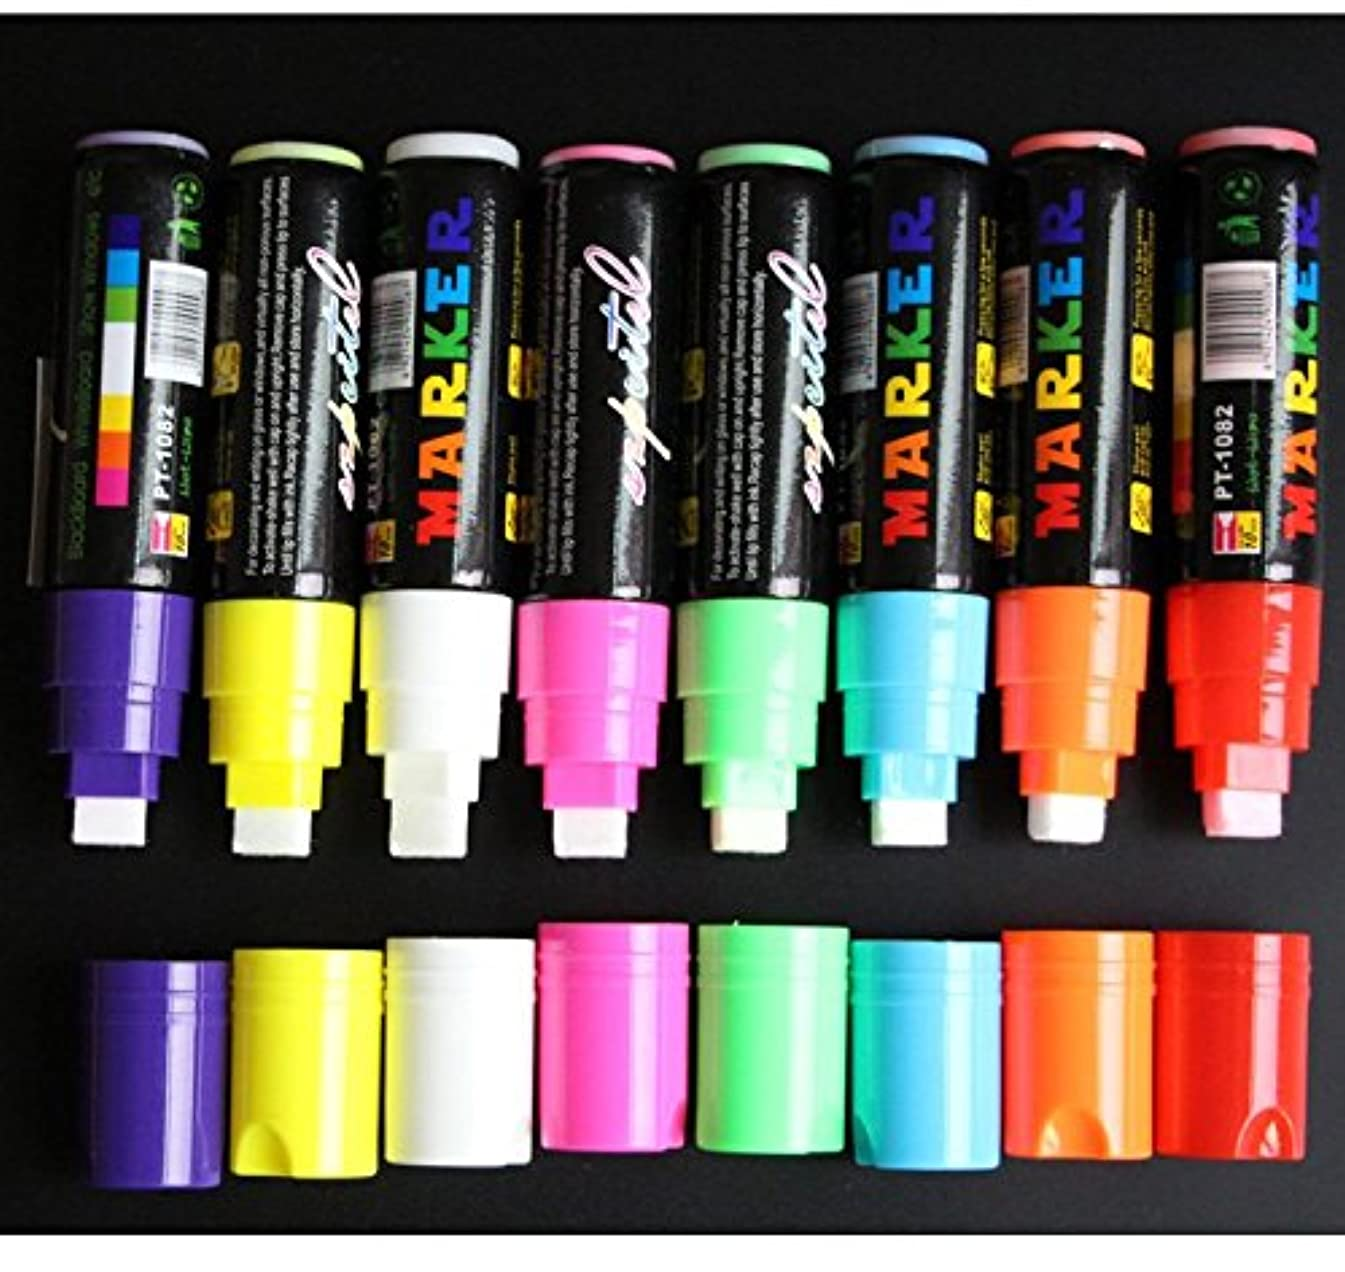 Chris-Wang 10MM Jumbo Tips Liquid Chalk Markers, Eraseable High Quality Vibrant Colors, Child Friendly, Use On Windows/Mirrors/LED Writing Board/Whiteboard/Chalkboard Labels - 8 Pack